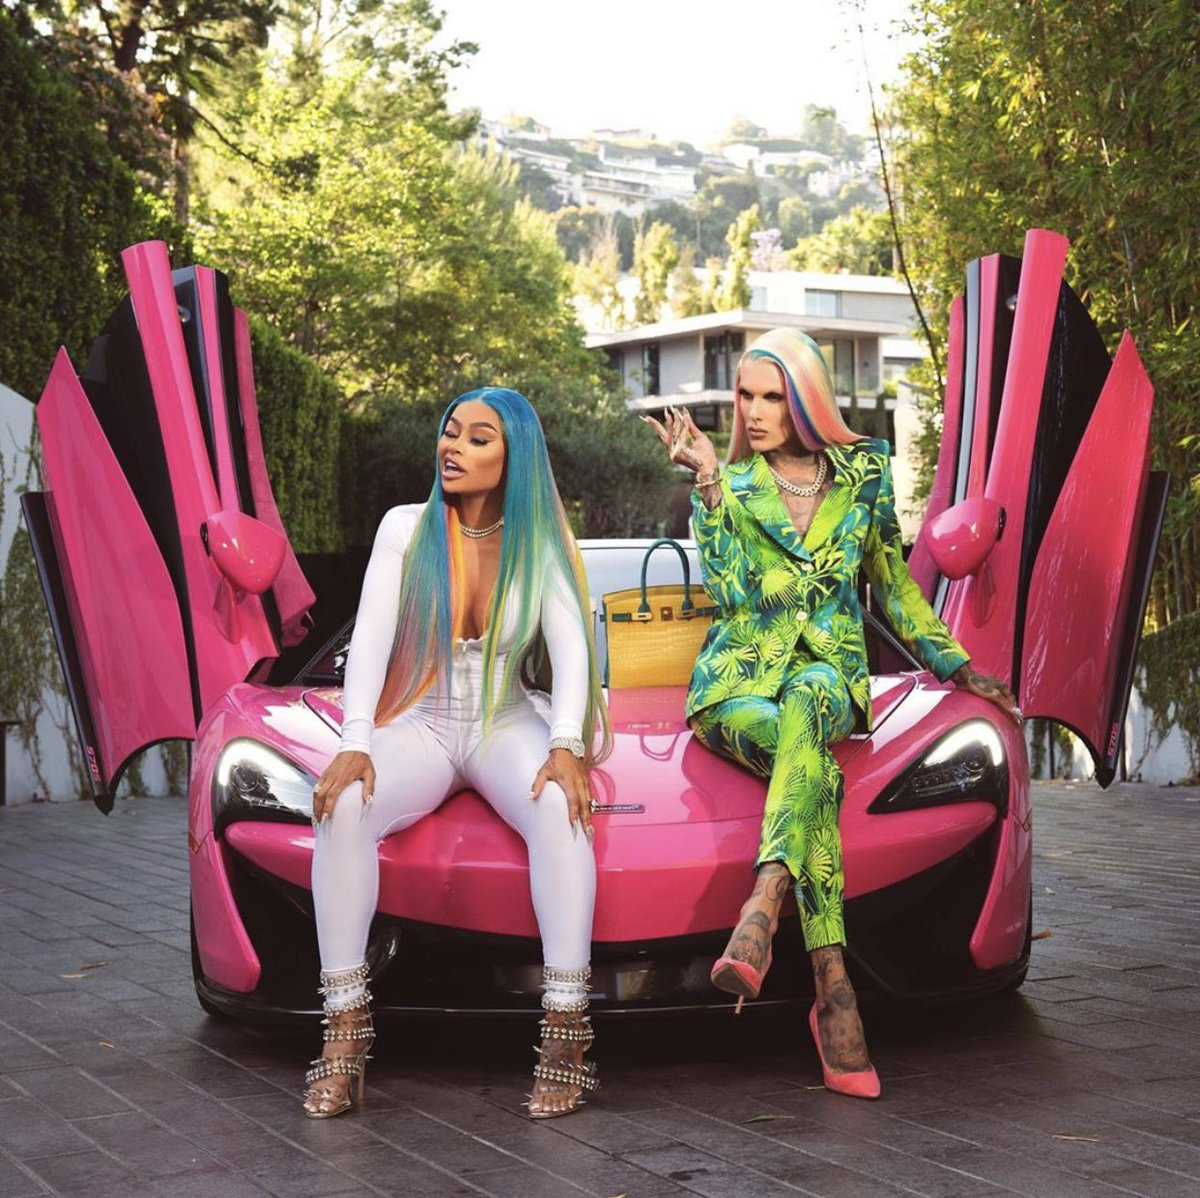 Brought out the pink McLaren just to race with @BLACCHYNA 🏁💖 https://t.co/r427uhlpdI